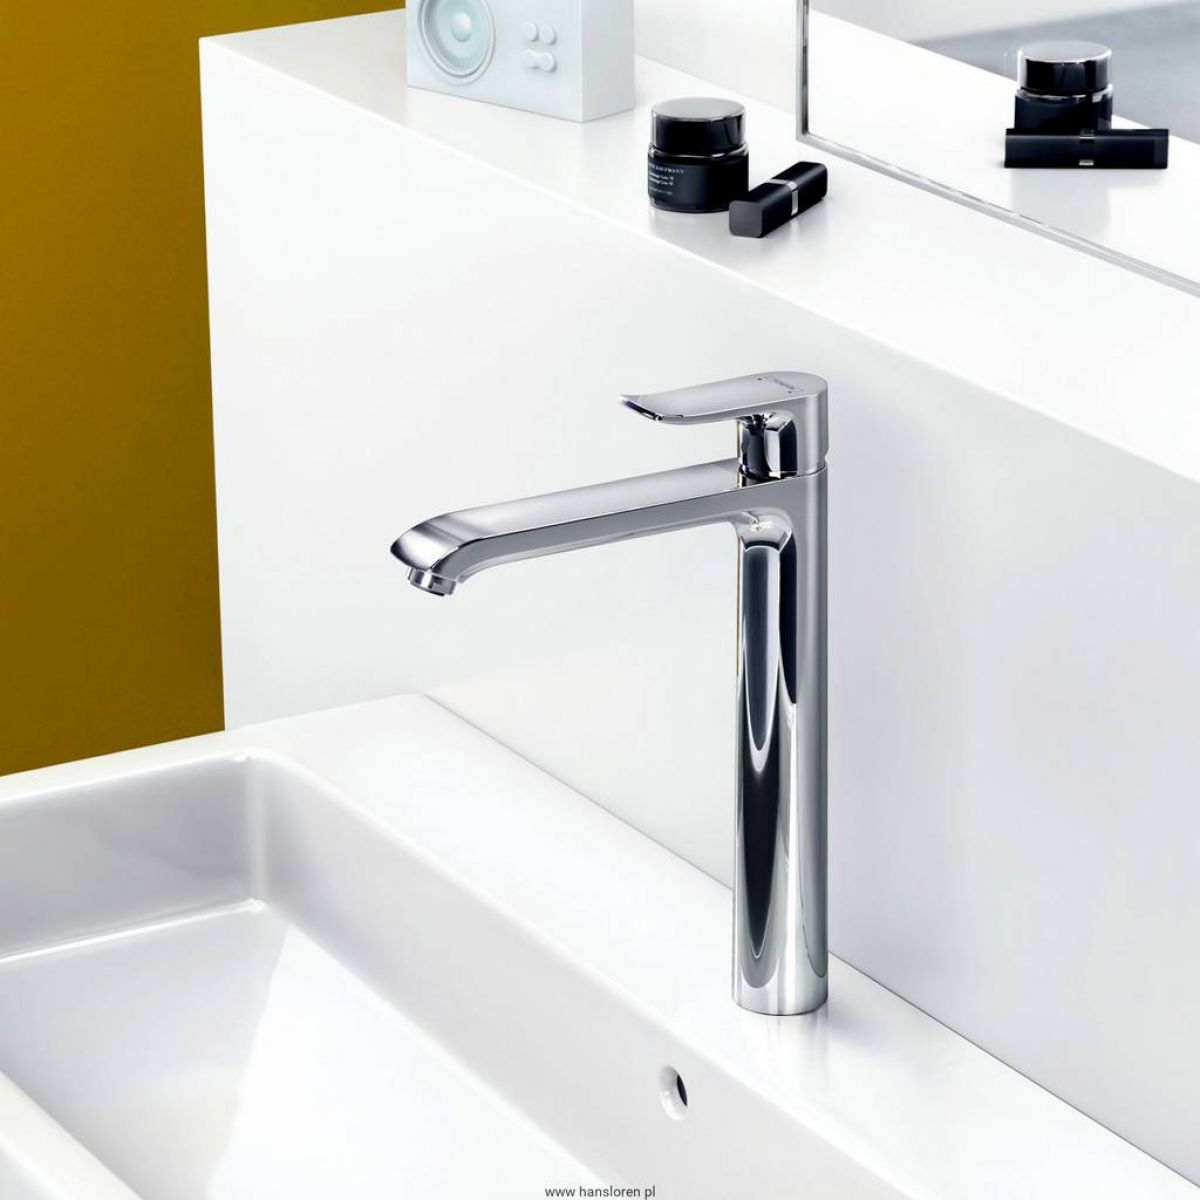 Hansgrohe Metris 260 Taller Basin Mixer Tap Uk Bathrooms - Hansgrohe Metris